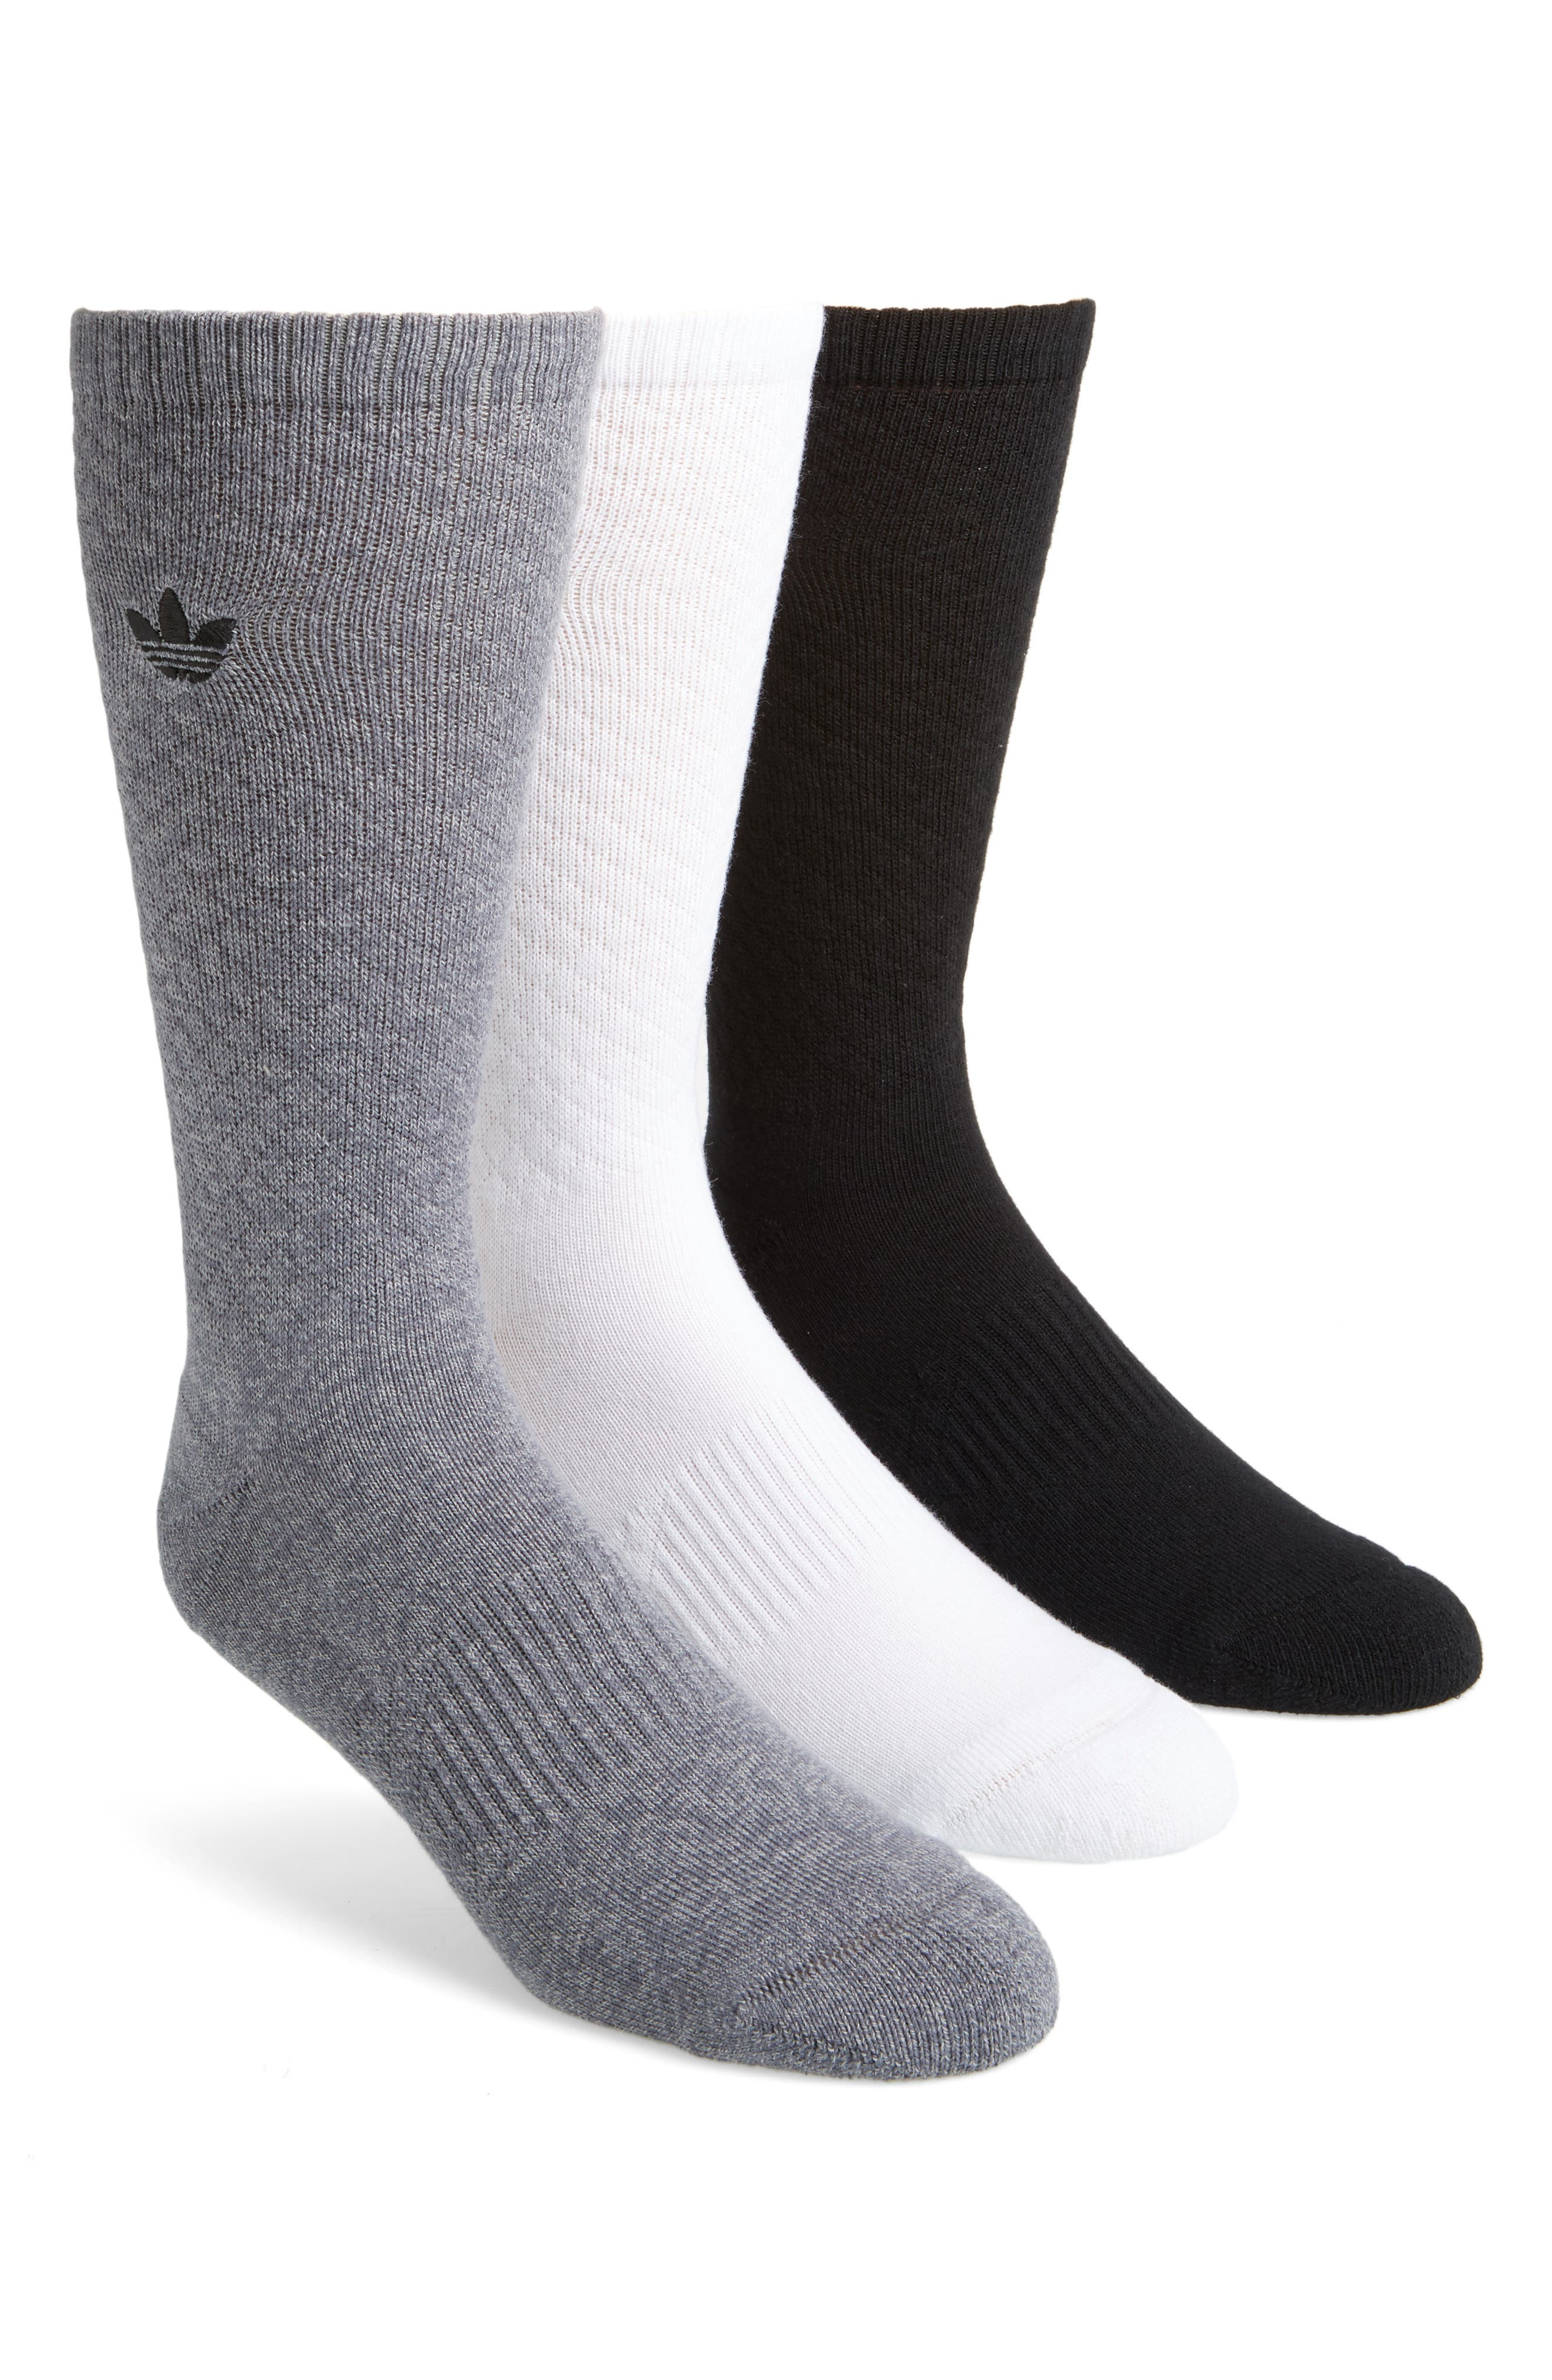 3-Pack Quilted Socks,                         Main,                         color, White/ Black/ Onyx